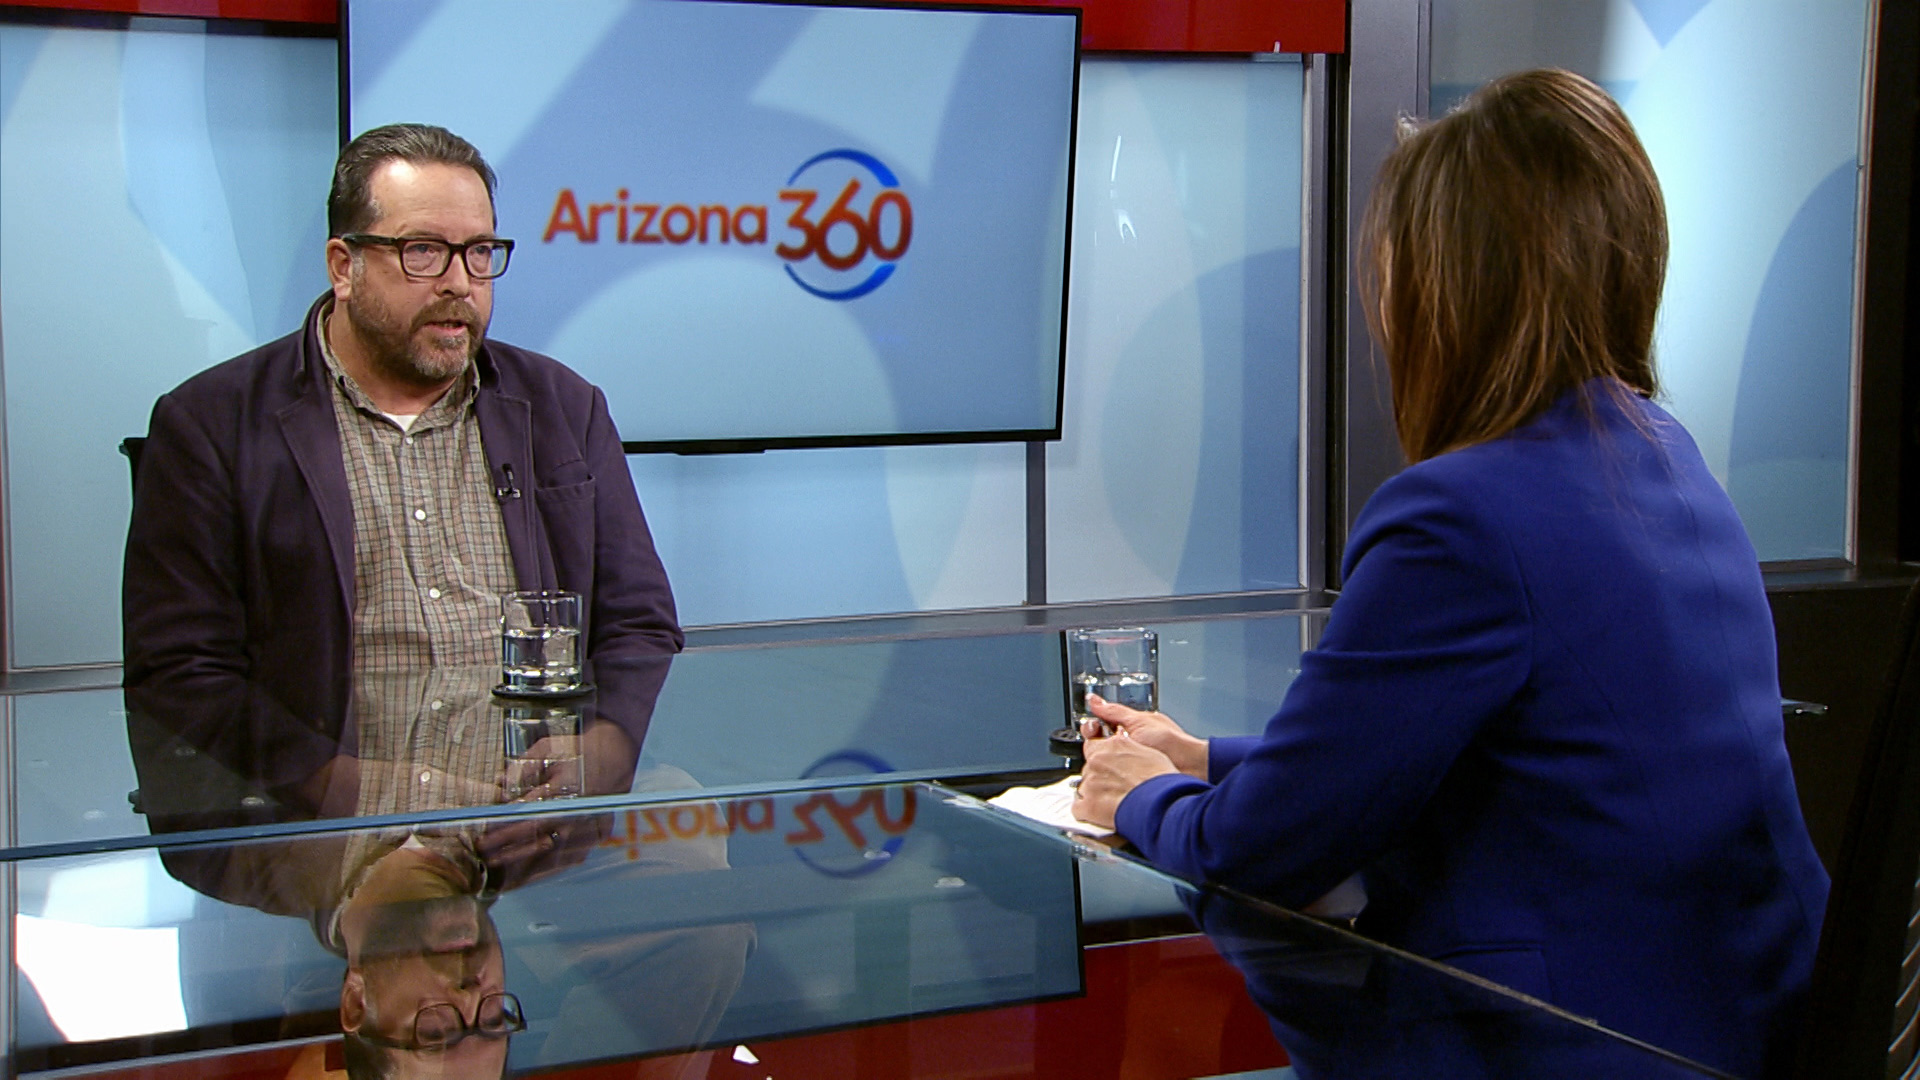 Author Todd Miller joins Lorraine Rivera in the Arizona 360 studio on April 11, 2019.